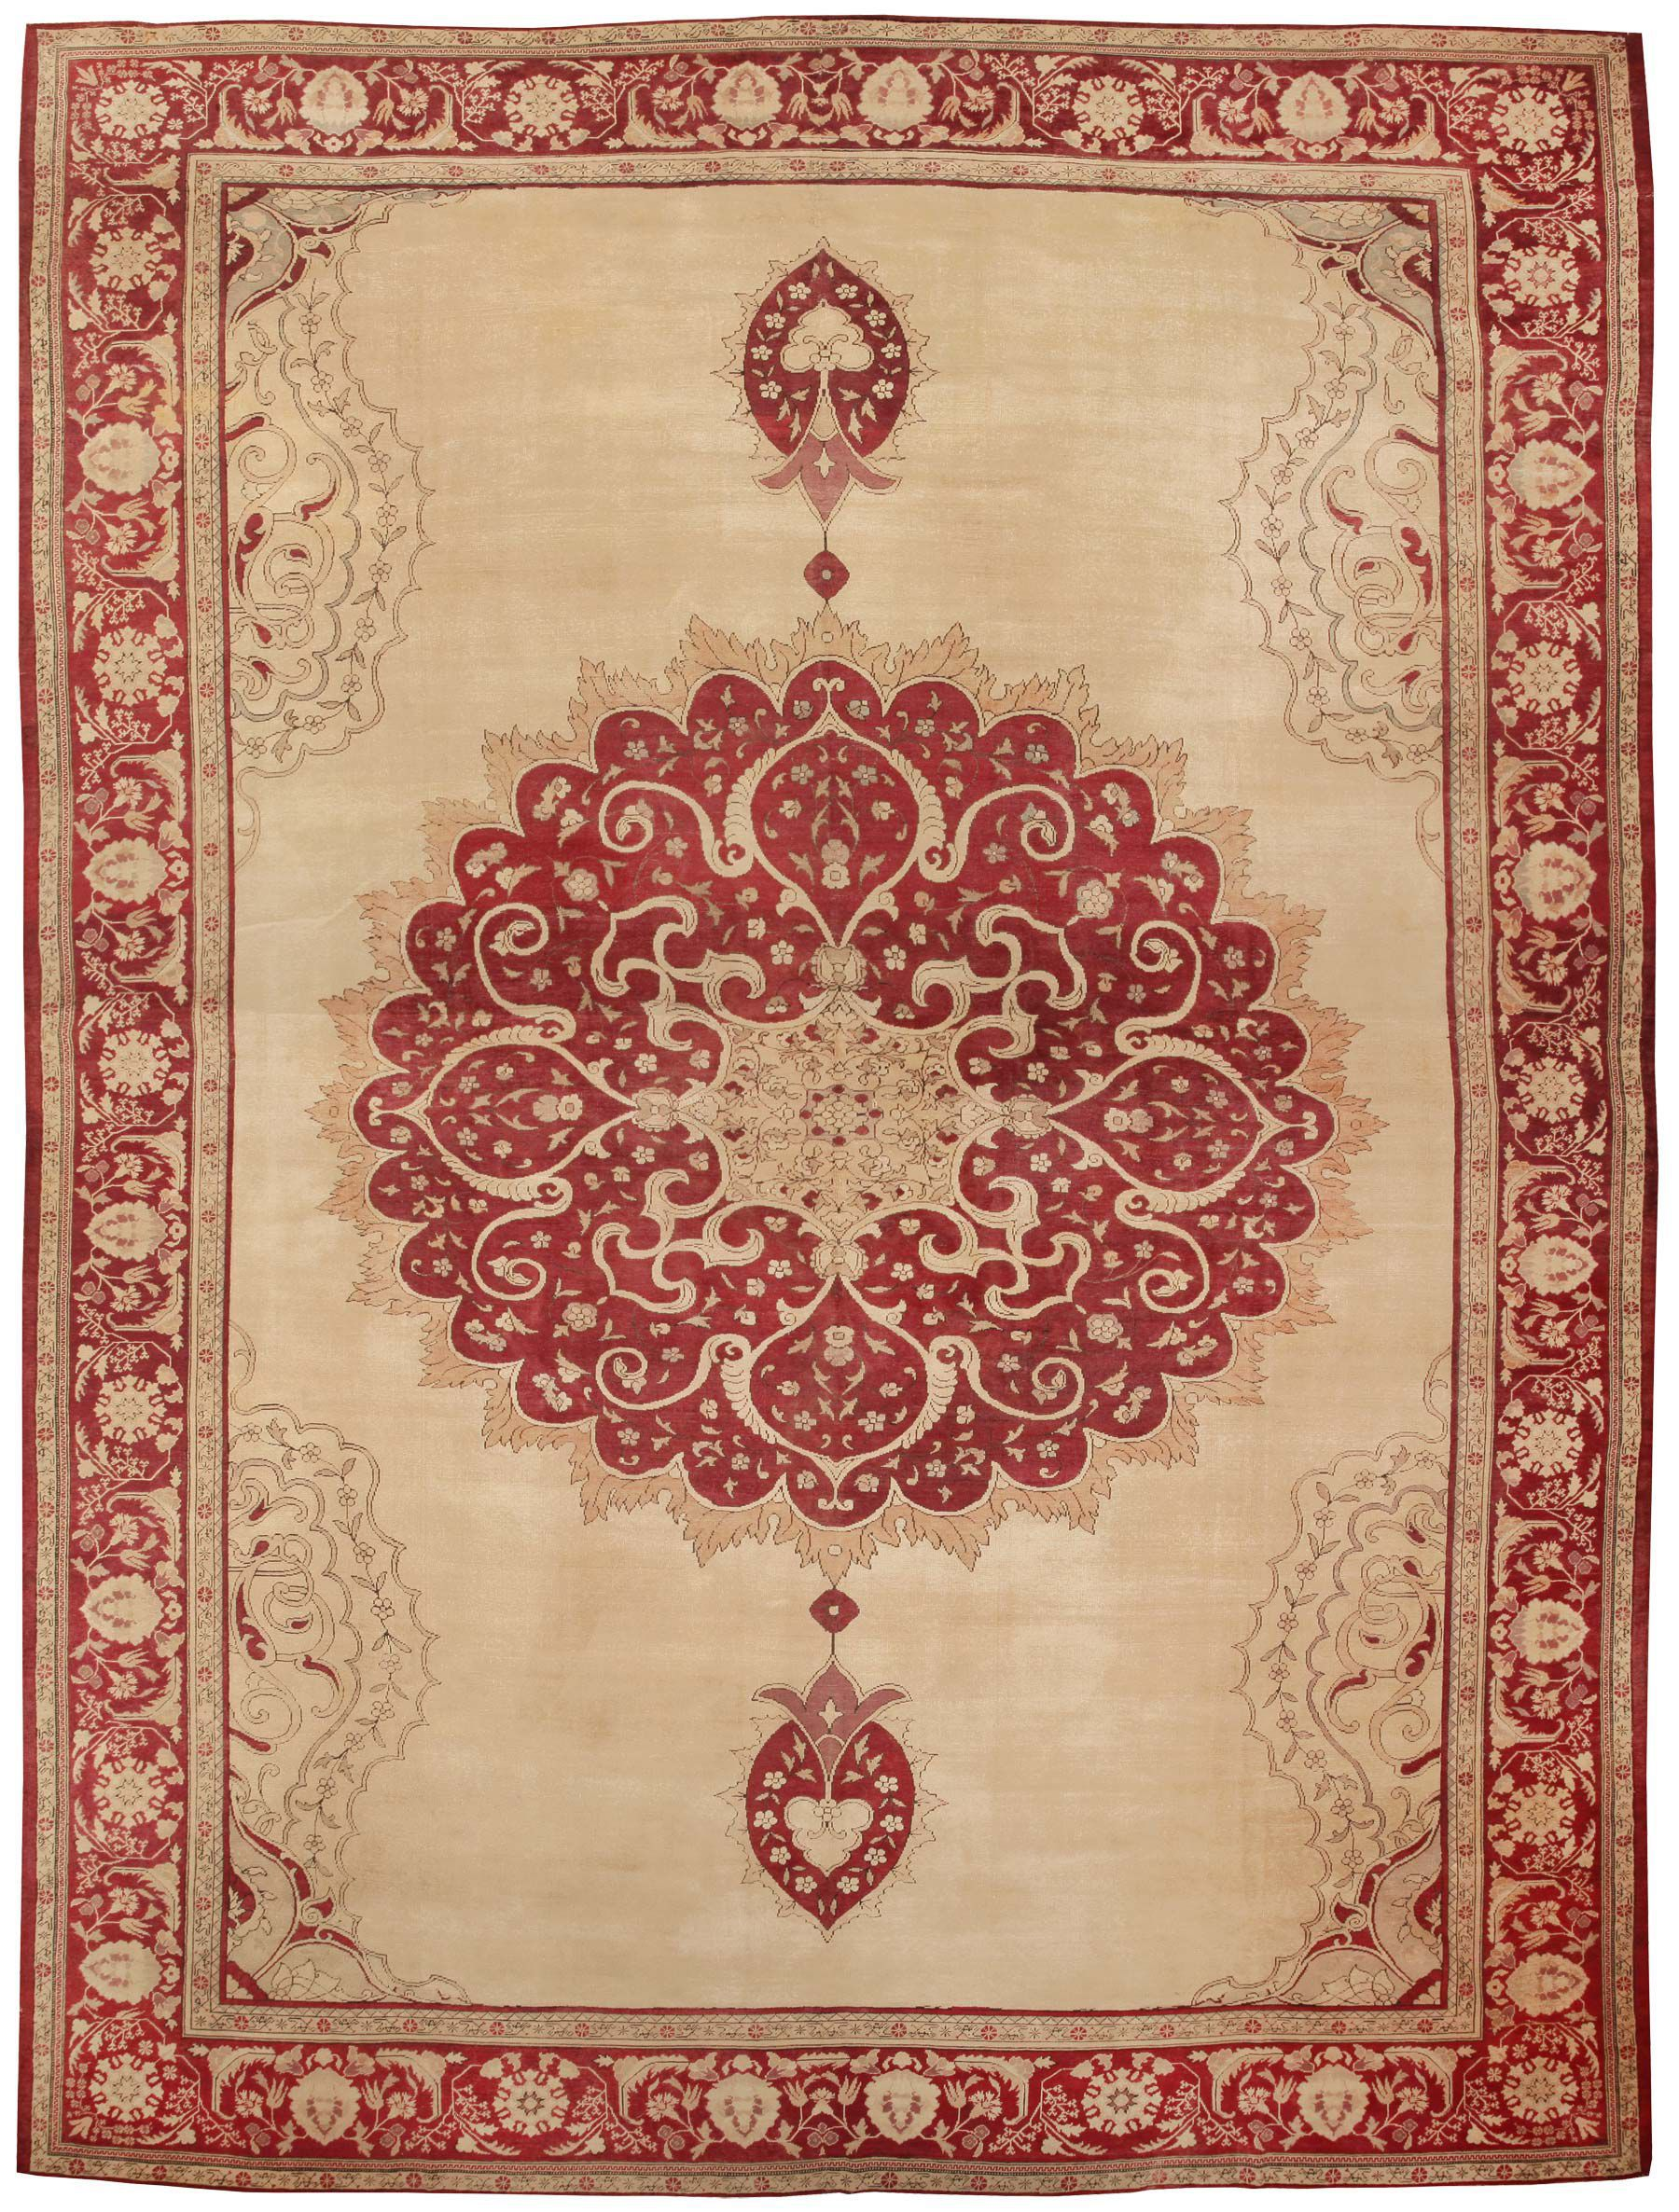 Cozy Antique Giordes Turkish Rug 565 Detail/Large View turkish carpets